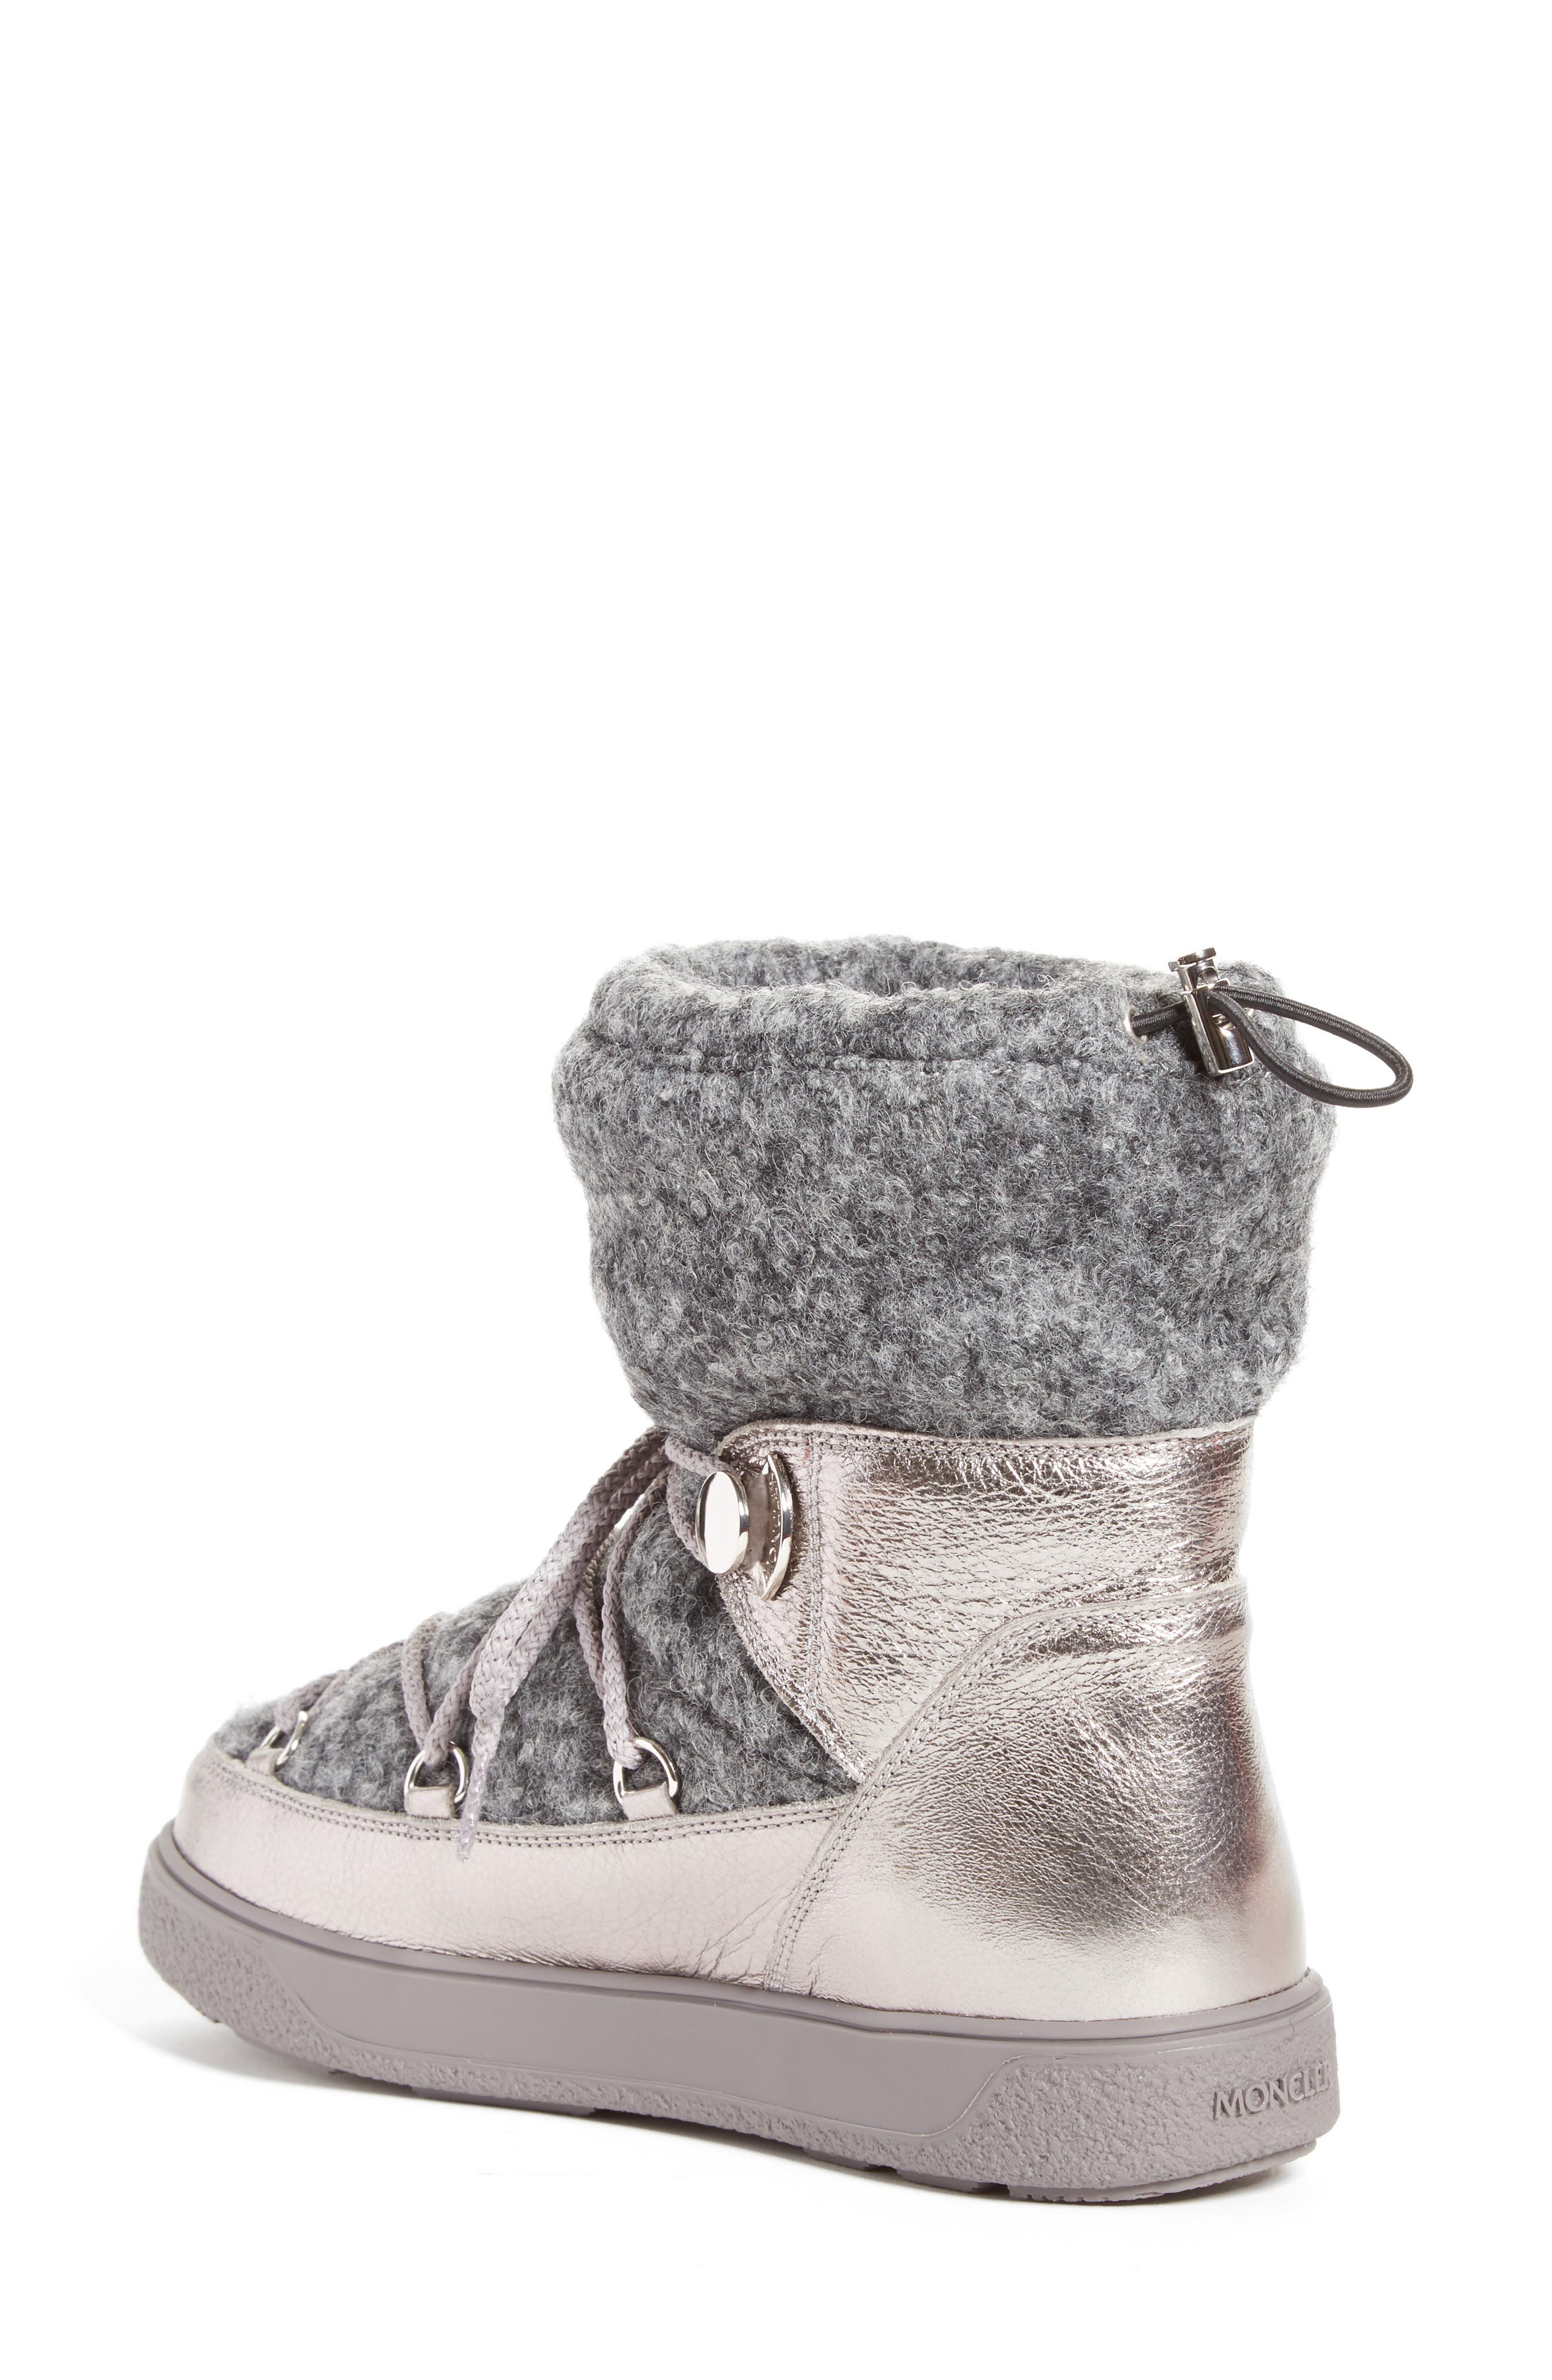 Ynnaf Boiled Wool Lined Snow Boot,                             Alternate thumbnail 2, color,                             Silver